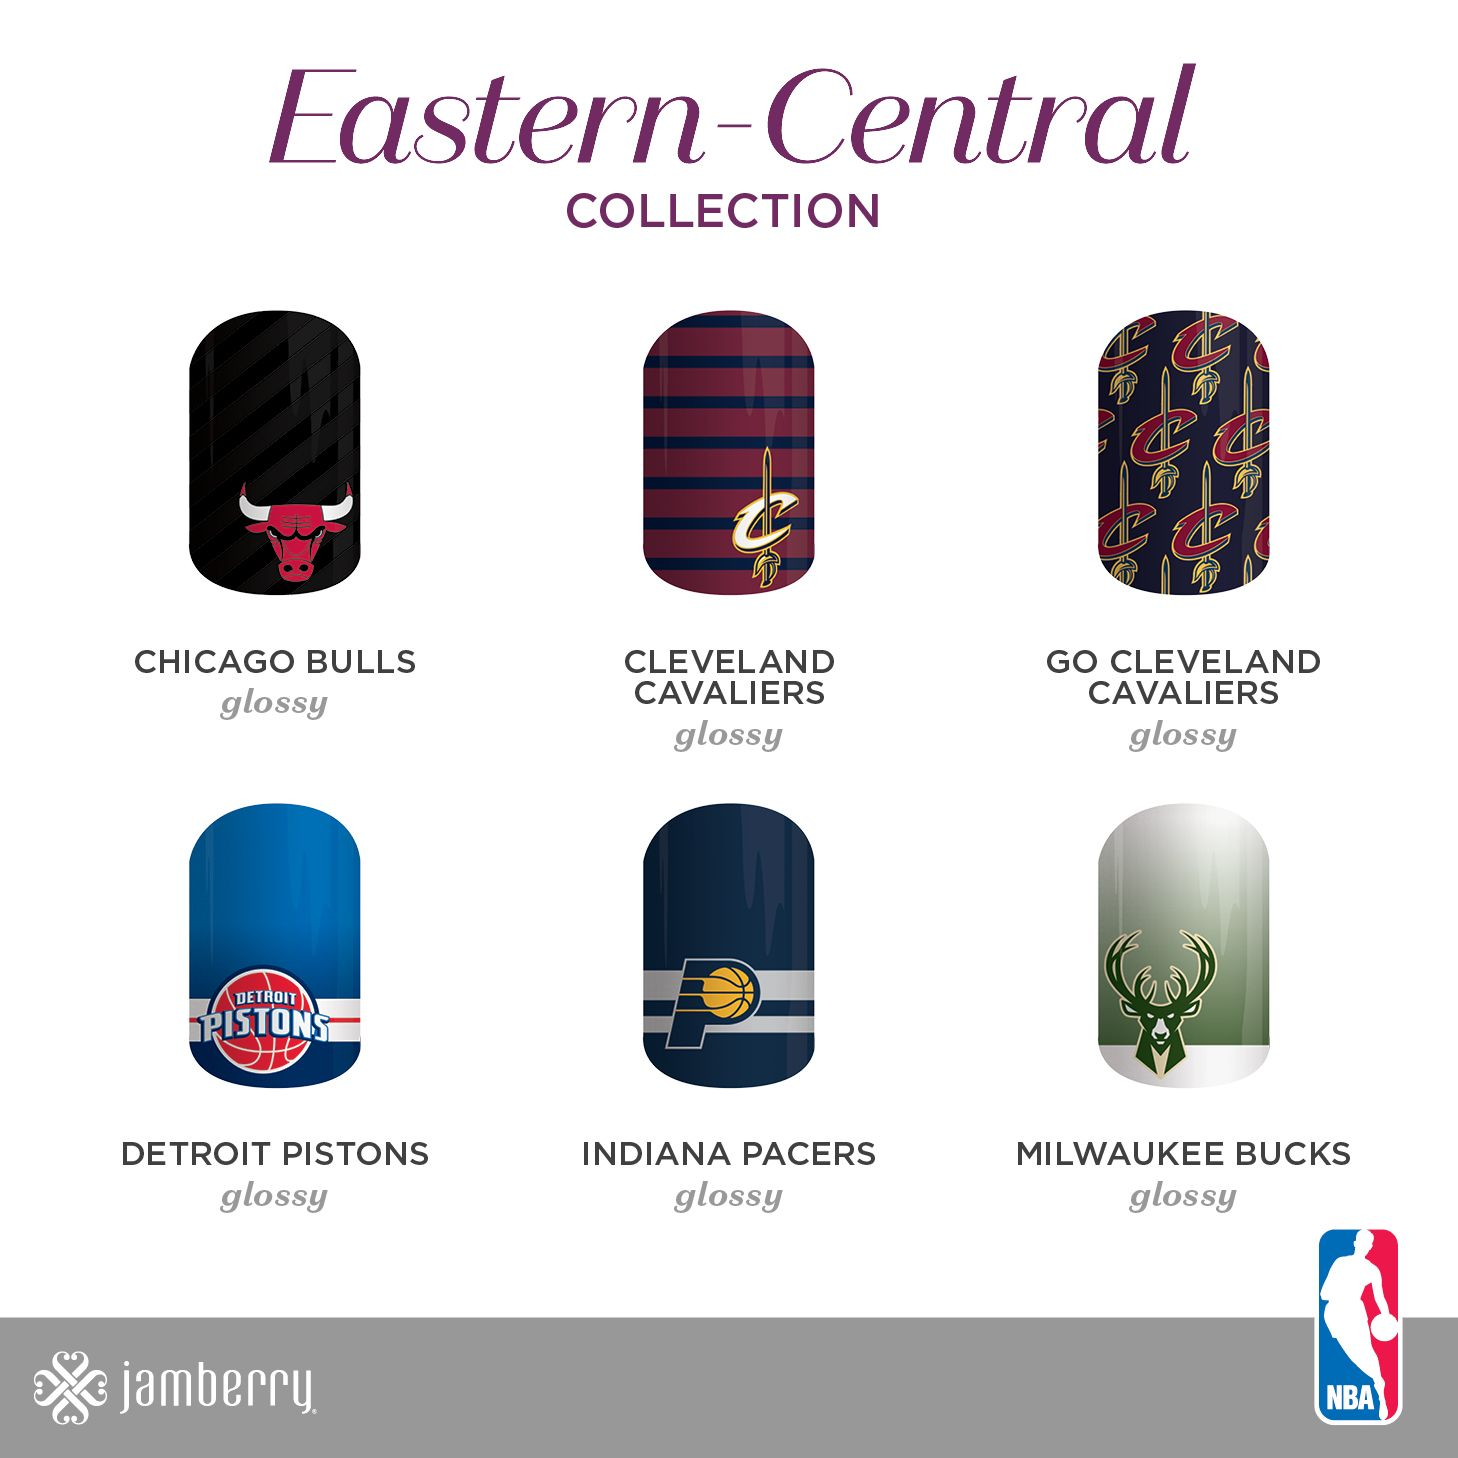 Jamberry, NBA, Basketball, Eastern0Central, Chicago Bulls, Cleveland ...